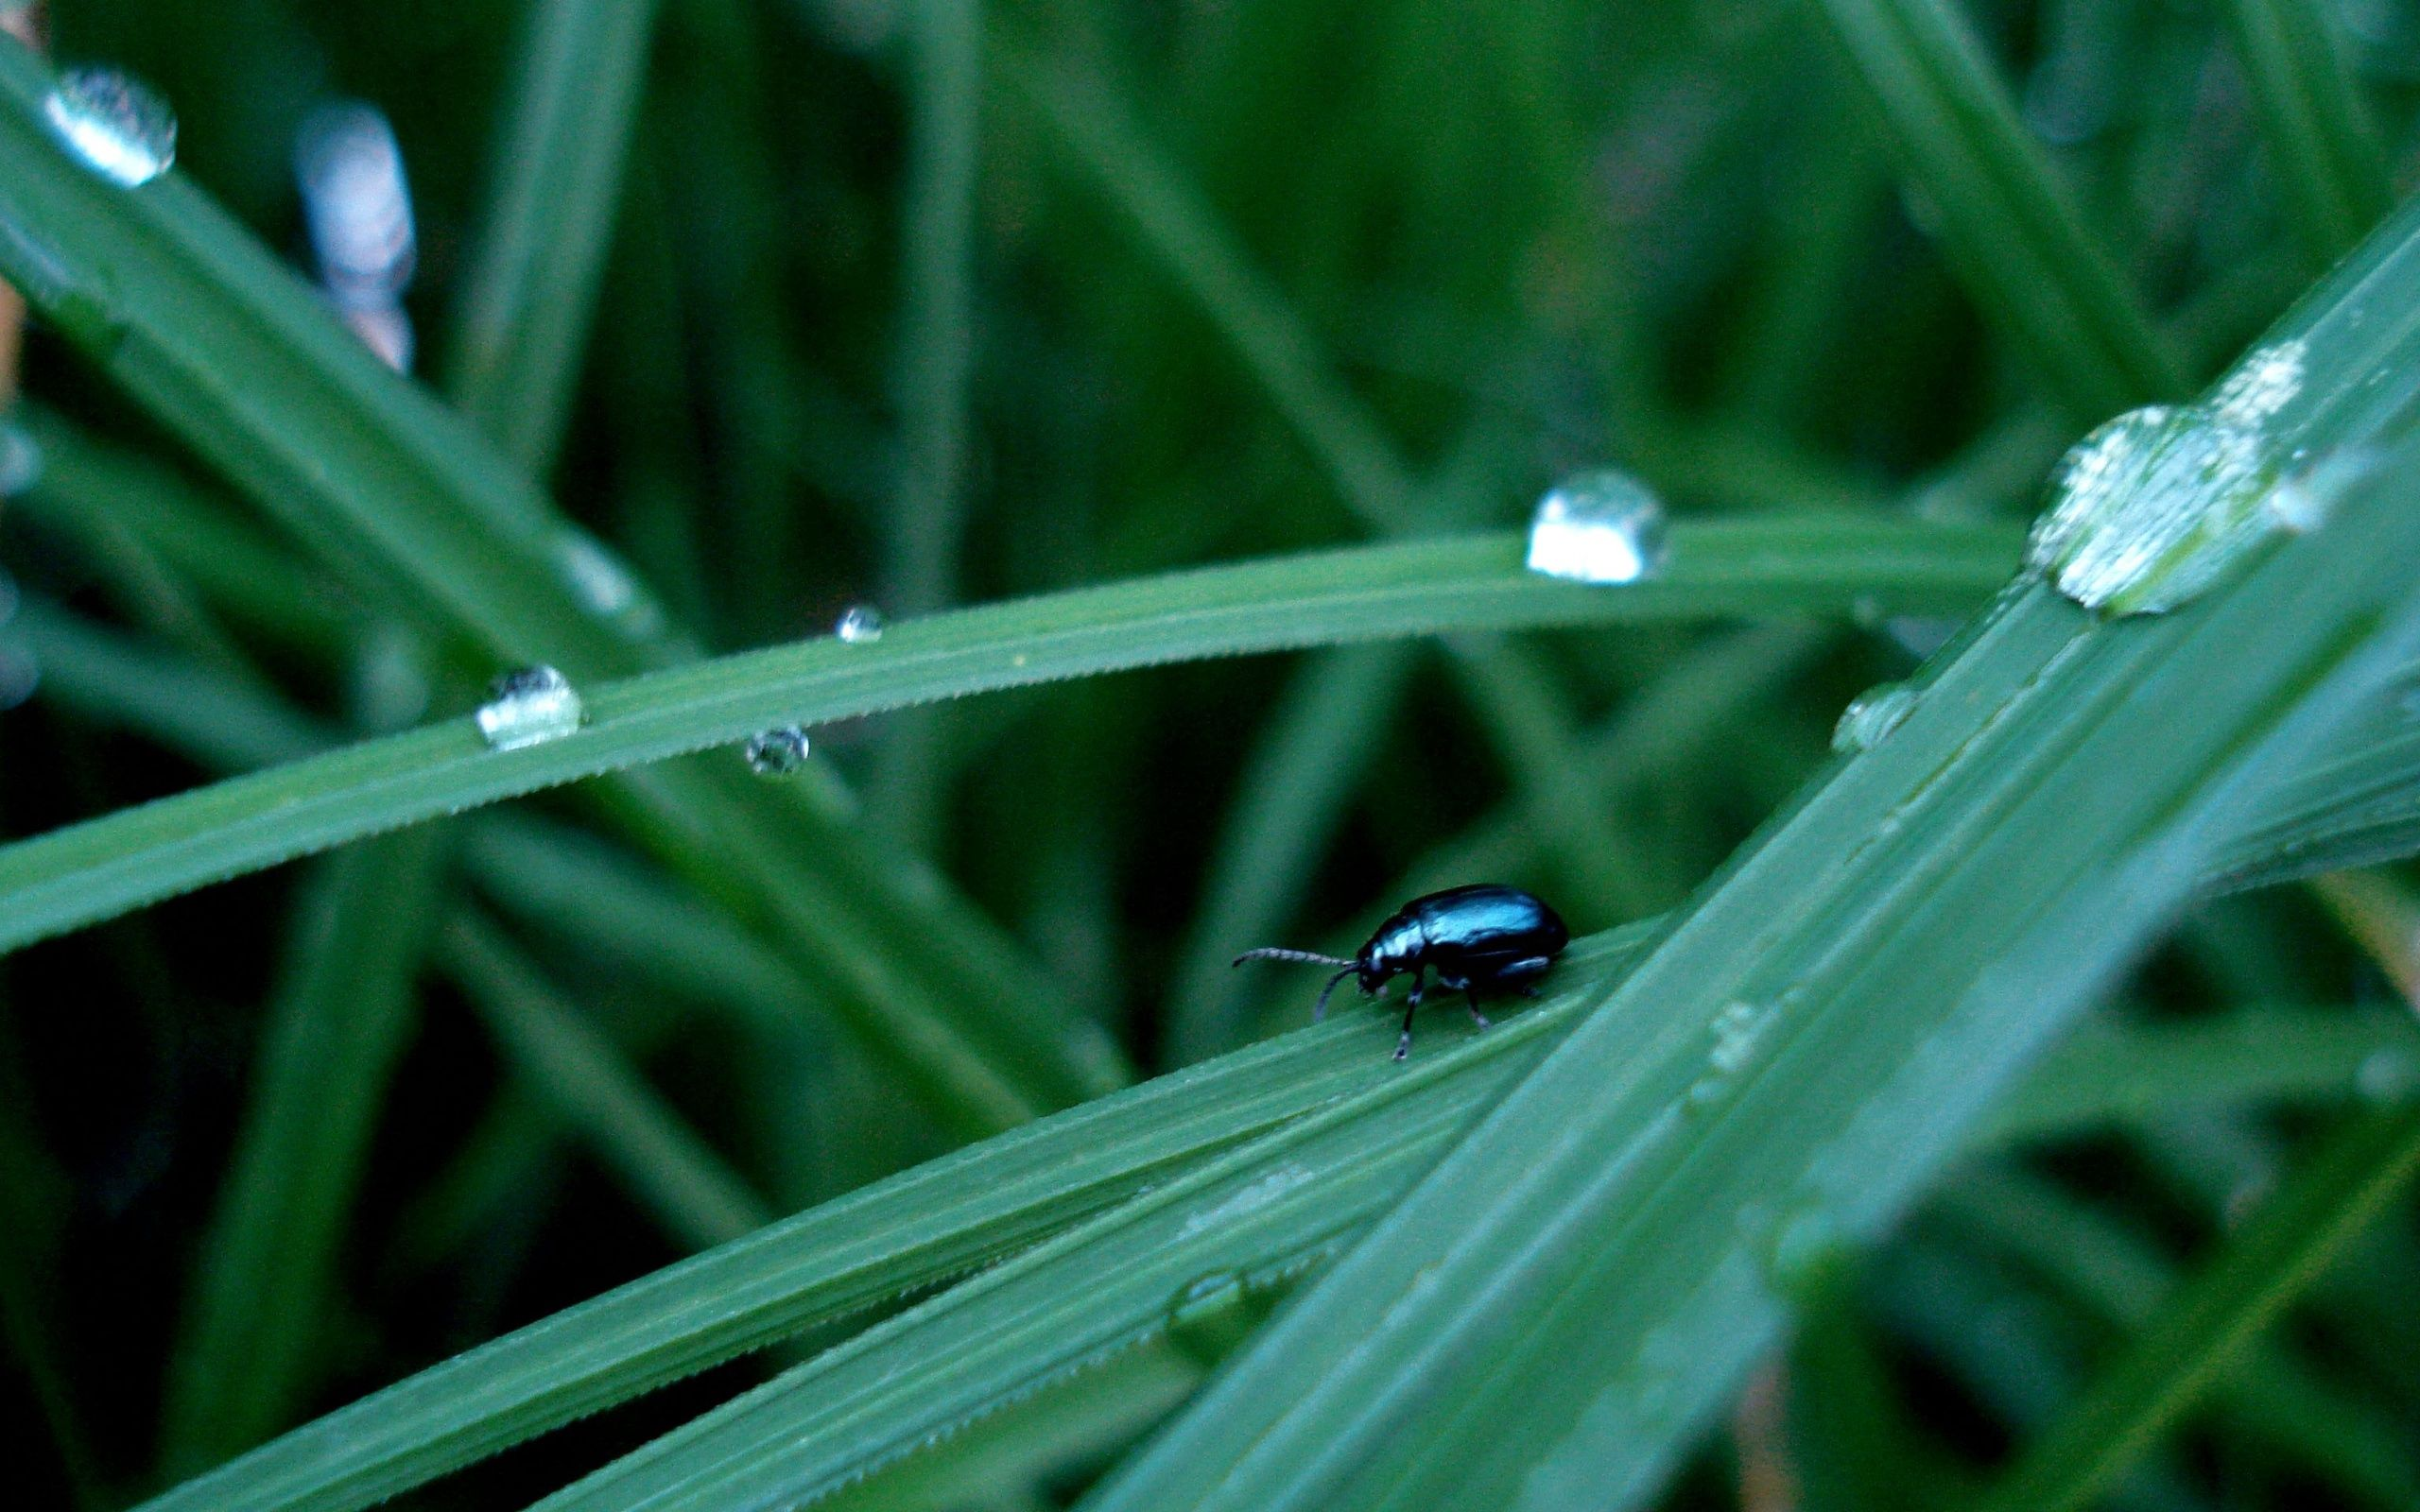 74032 download wallpaper Macro, Insect, Grass, Crawl, Thick, Grounds screensavers and pictures for free